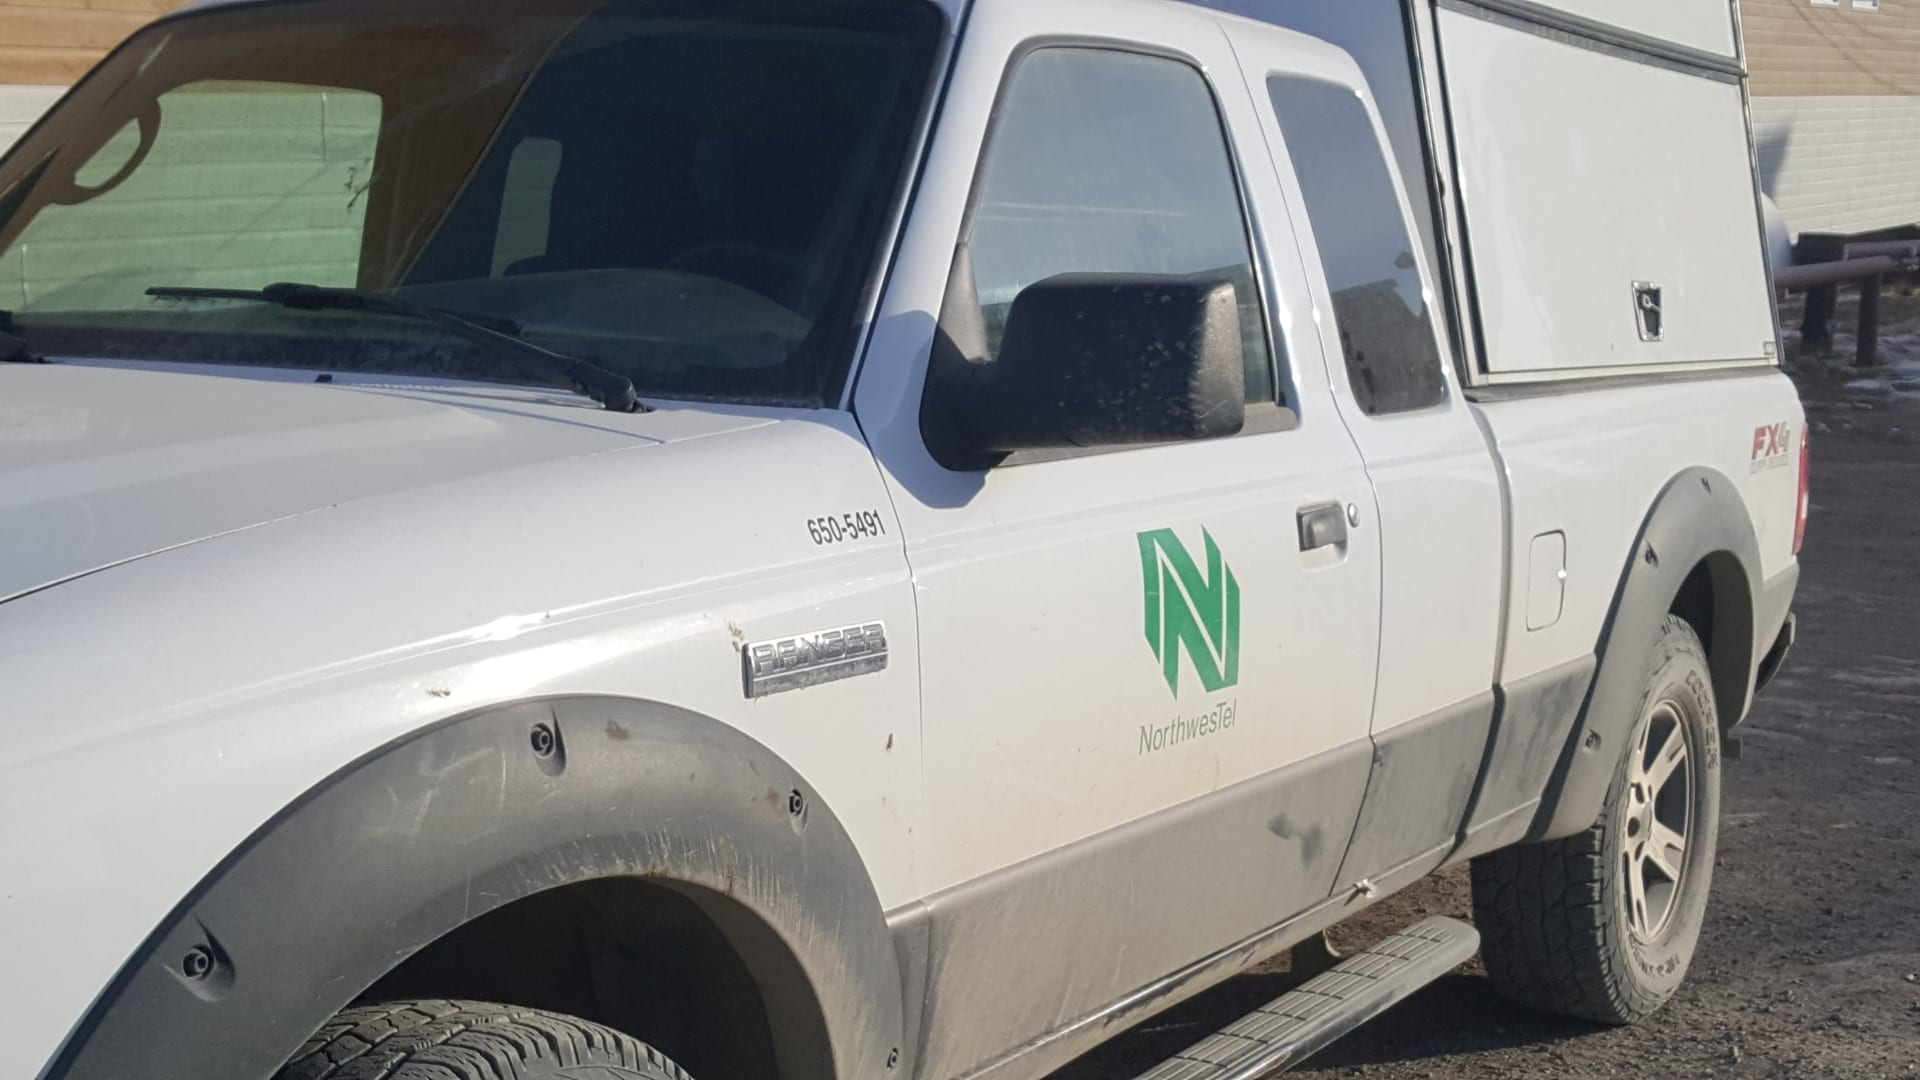 Northwestel customers in Yellowknife and surrounding areas had a 'major' disruption in services on May 8. NNSL file photo